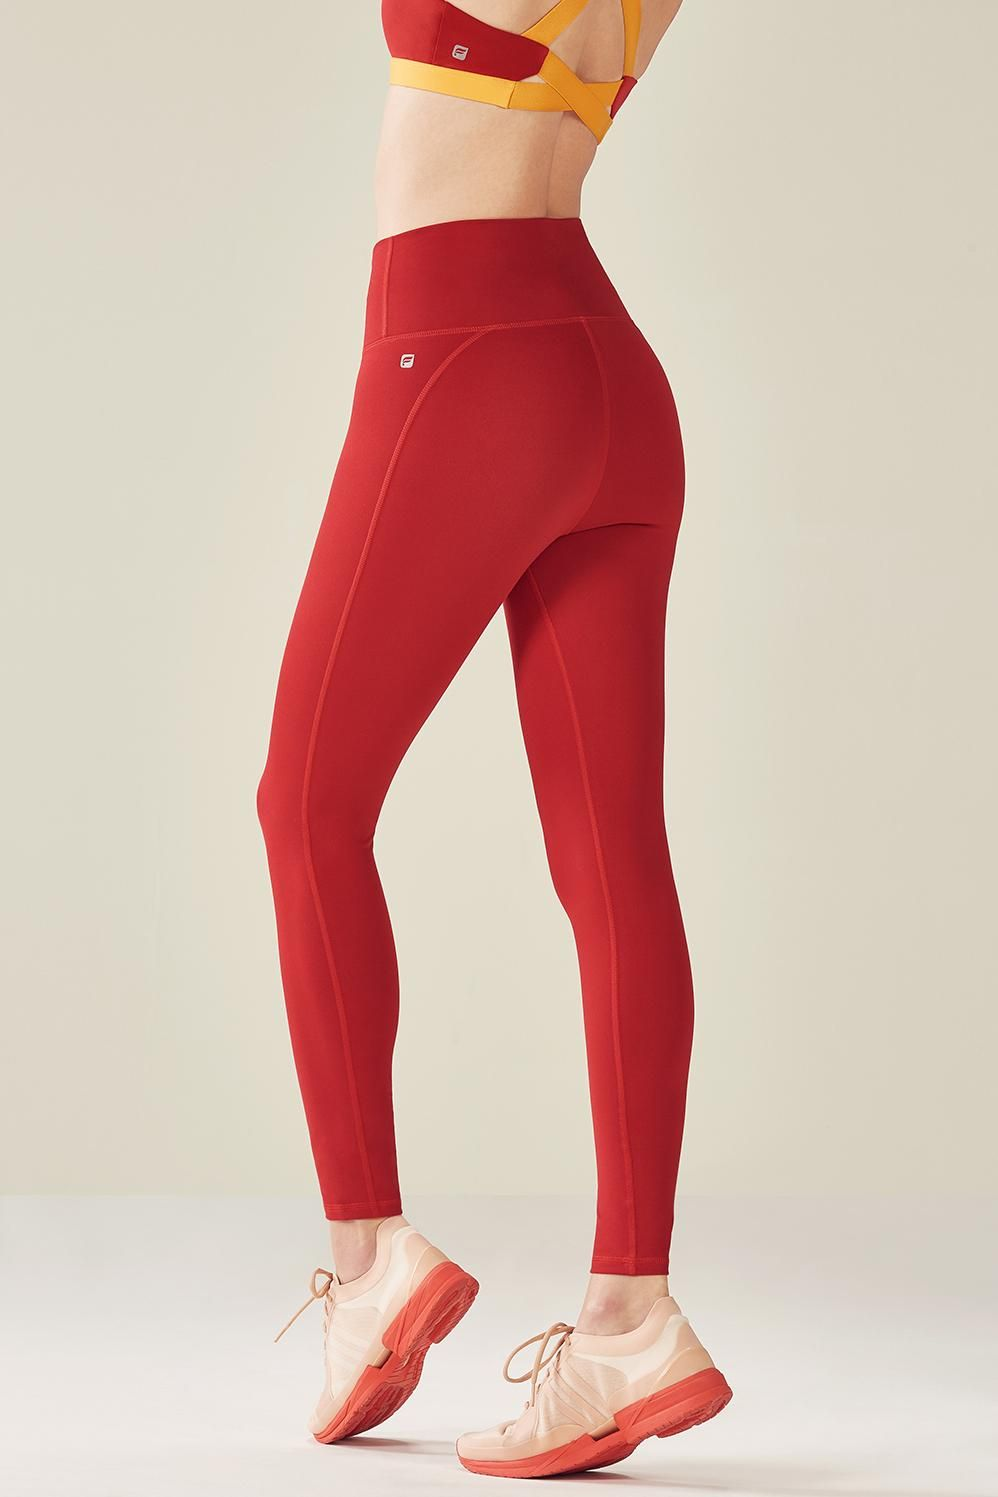 66eca34f331 Fabletics Legging High-Waisted Solid Powerhold® 7 8 Womens Red Size 2X